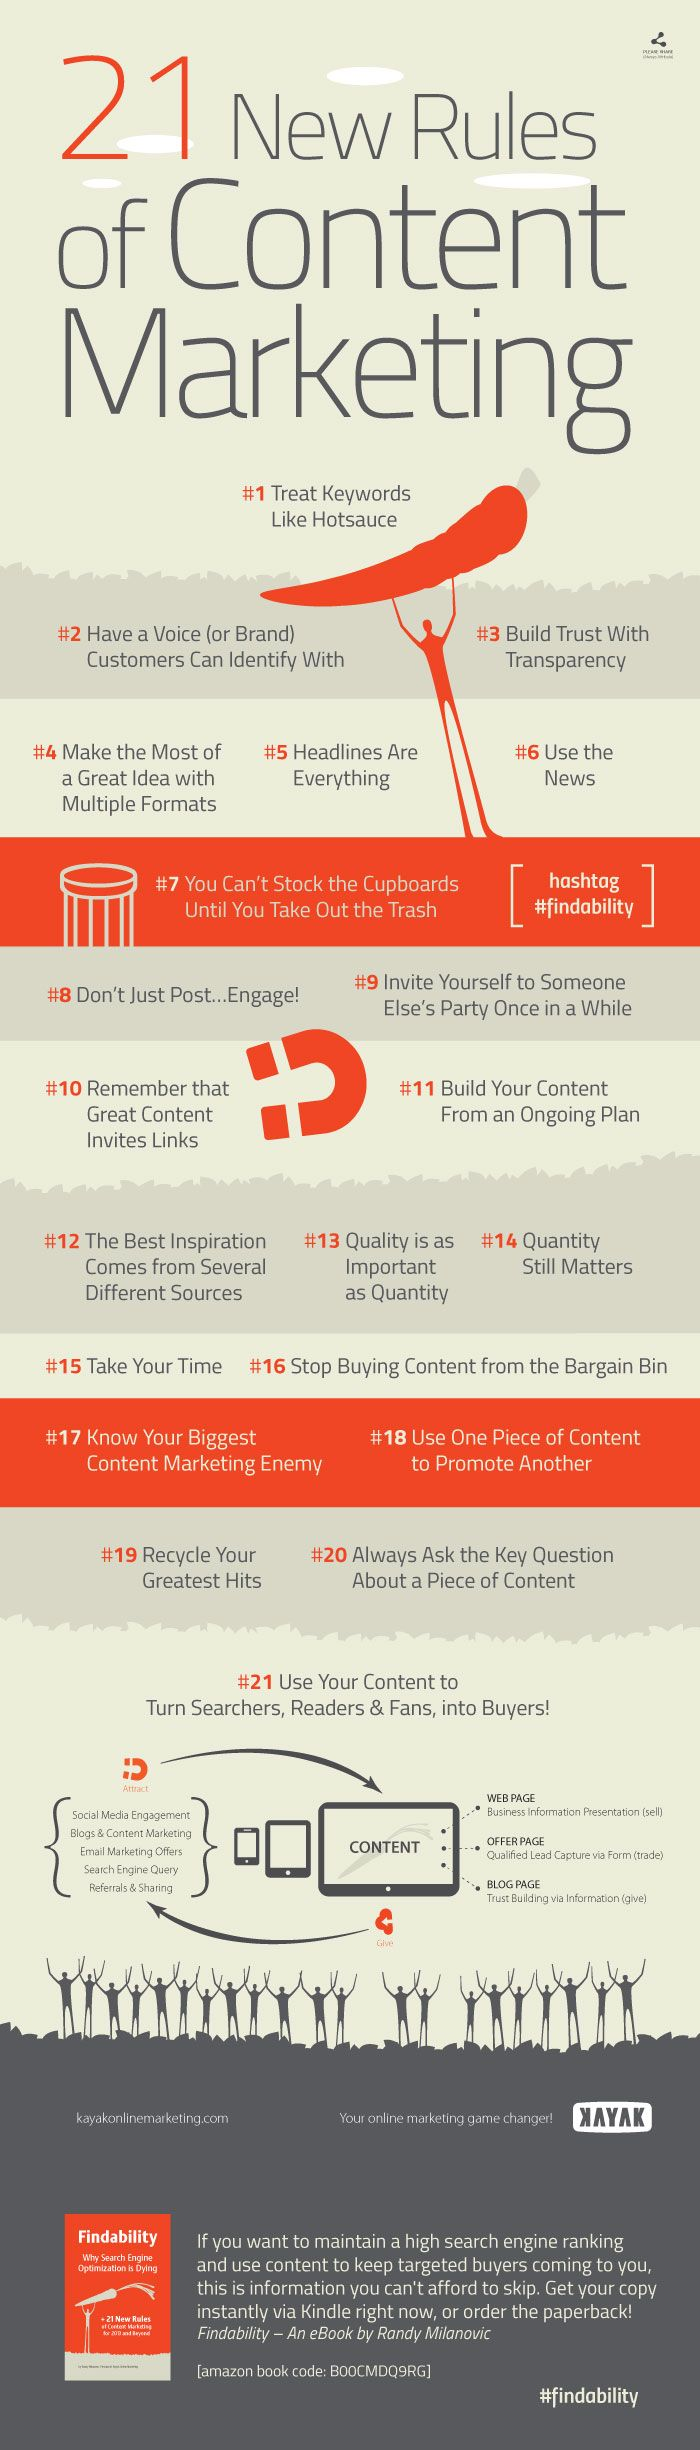 21 New Rules of Content Marketing - Kayak. from Juan Manuel Alonso Vallovera.